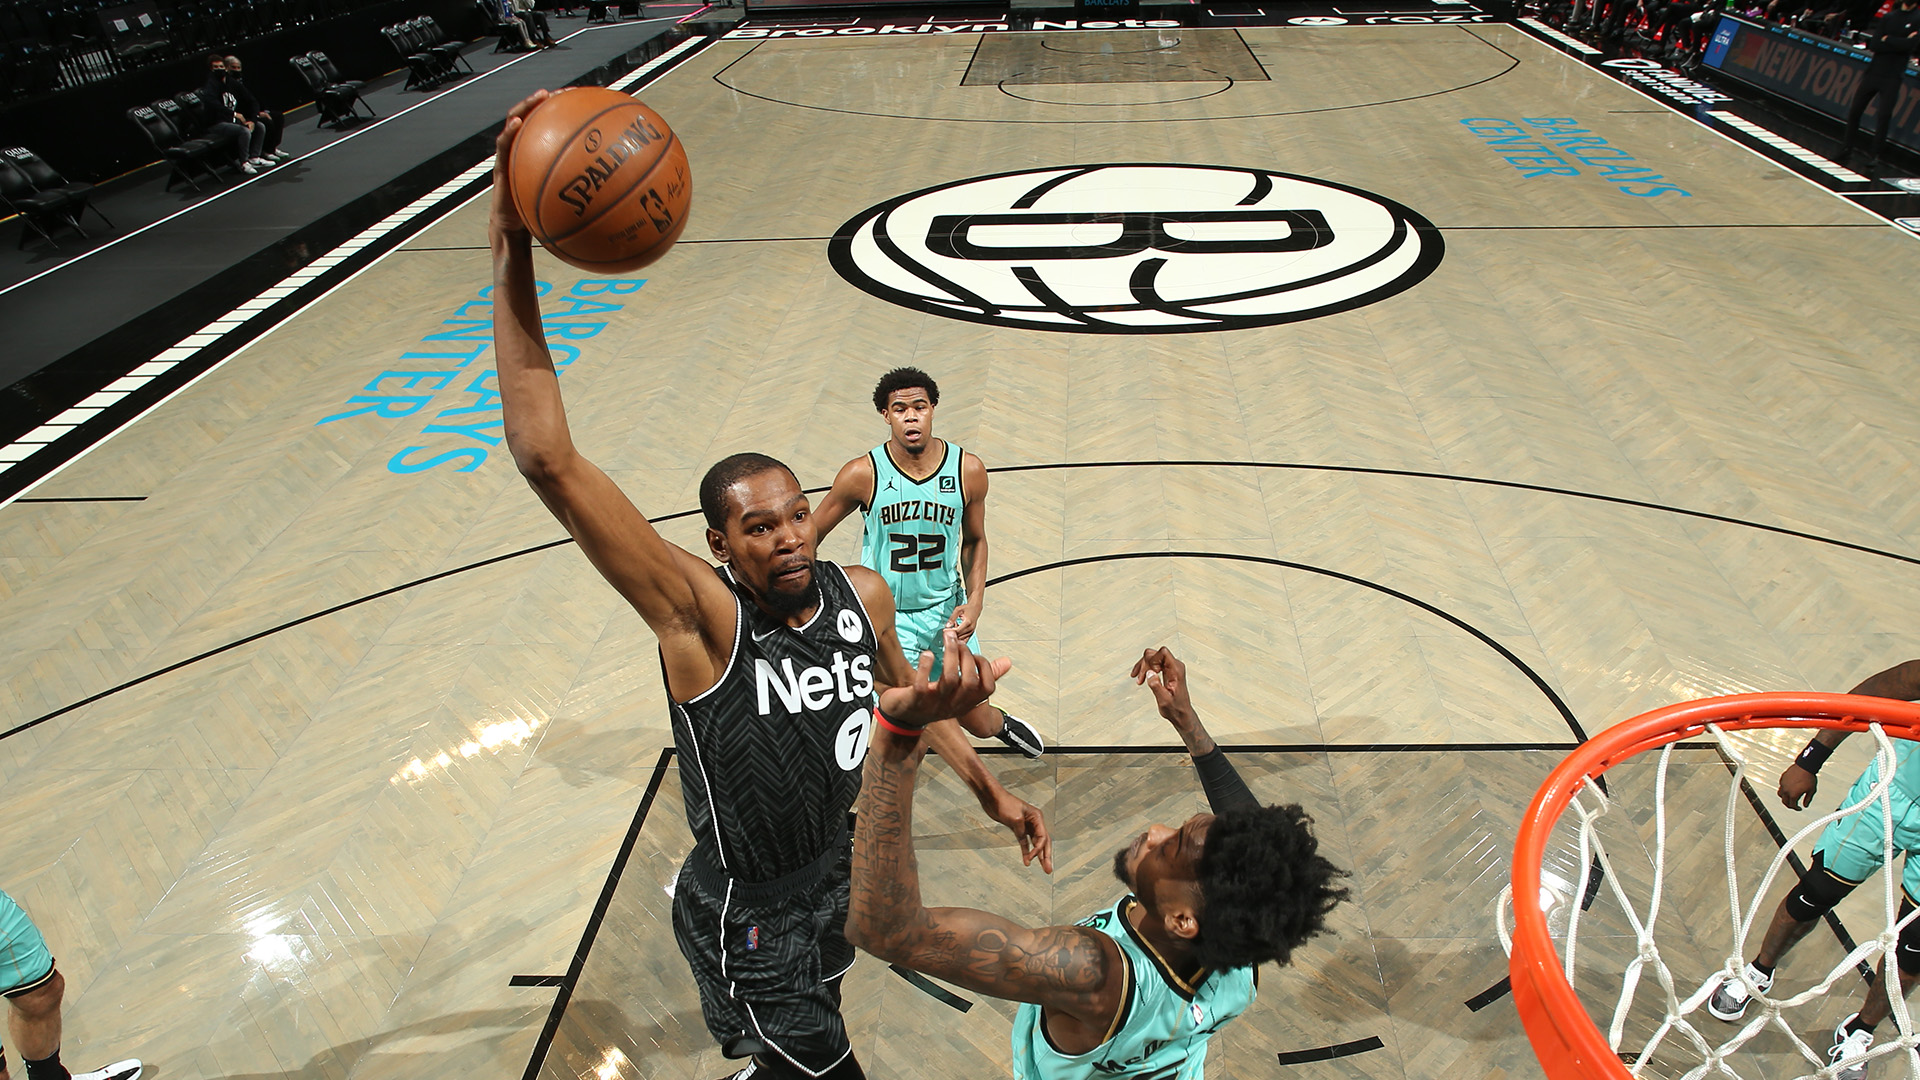 Nets pull away from Hornets behind Durant's double-double